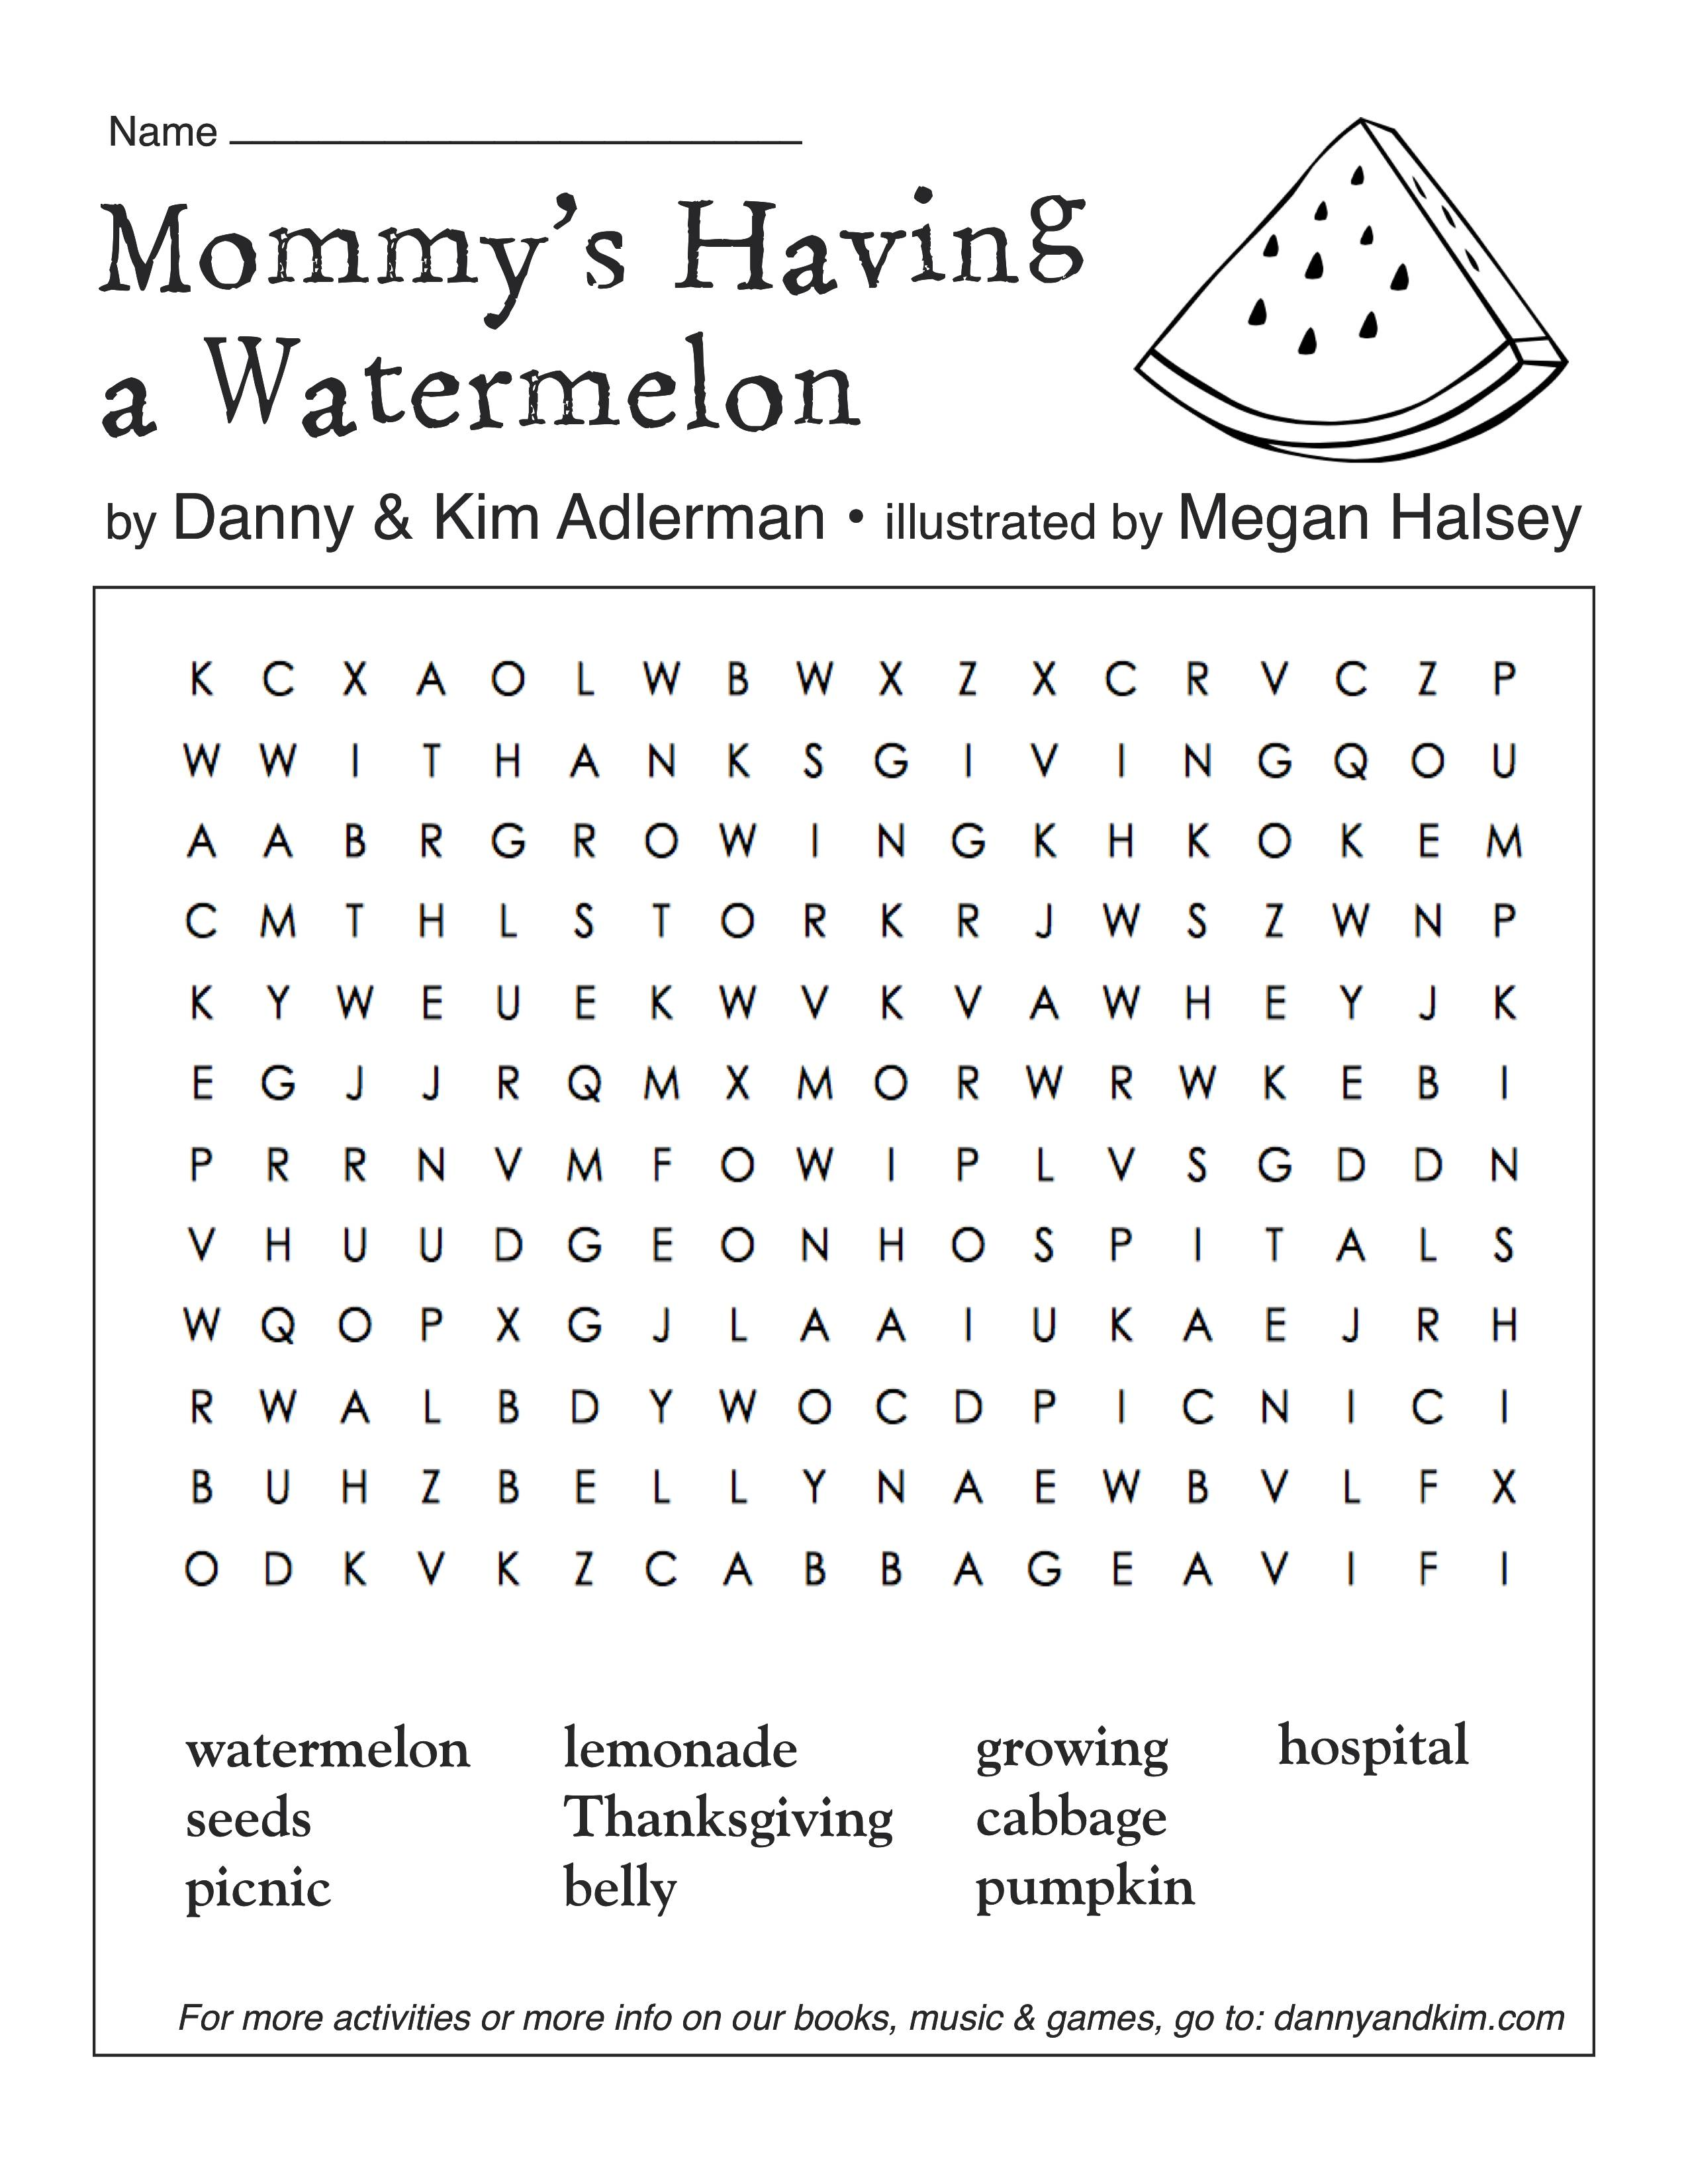 instructions for the watermelon challenge